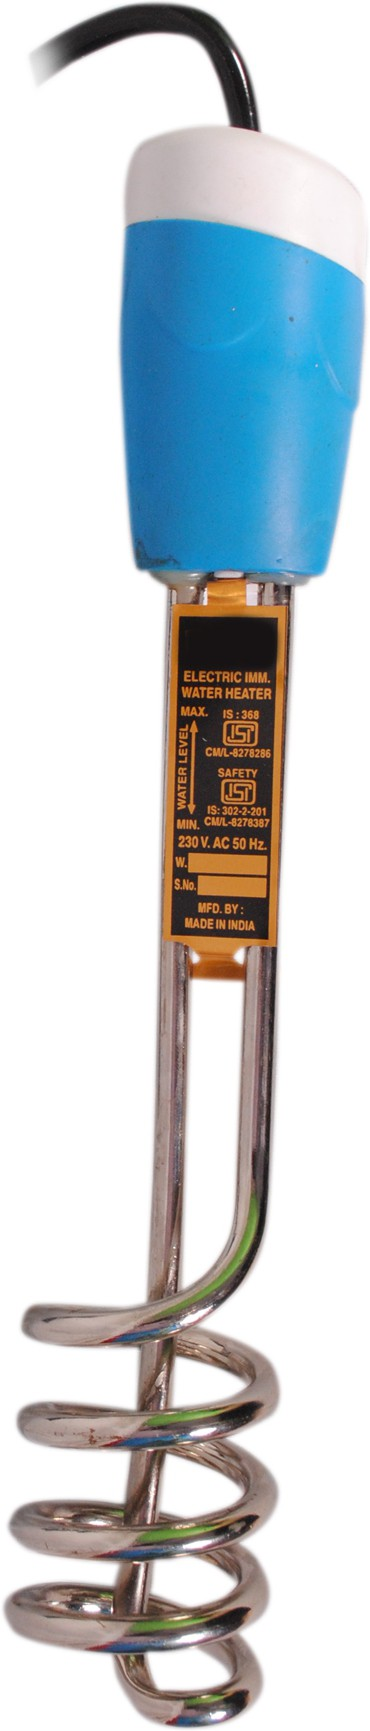 View Wi Retail Aqua 1500 W Immersion Heater Rod(Water) Home Appliances Price Online(Wi Retail)